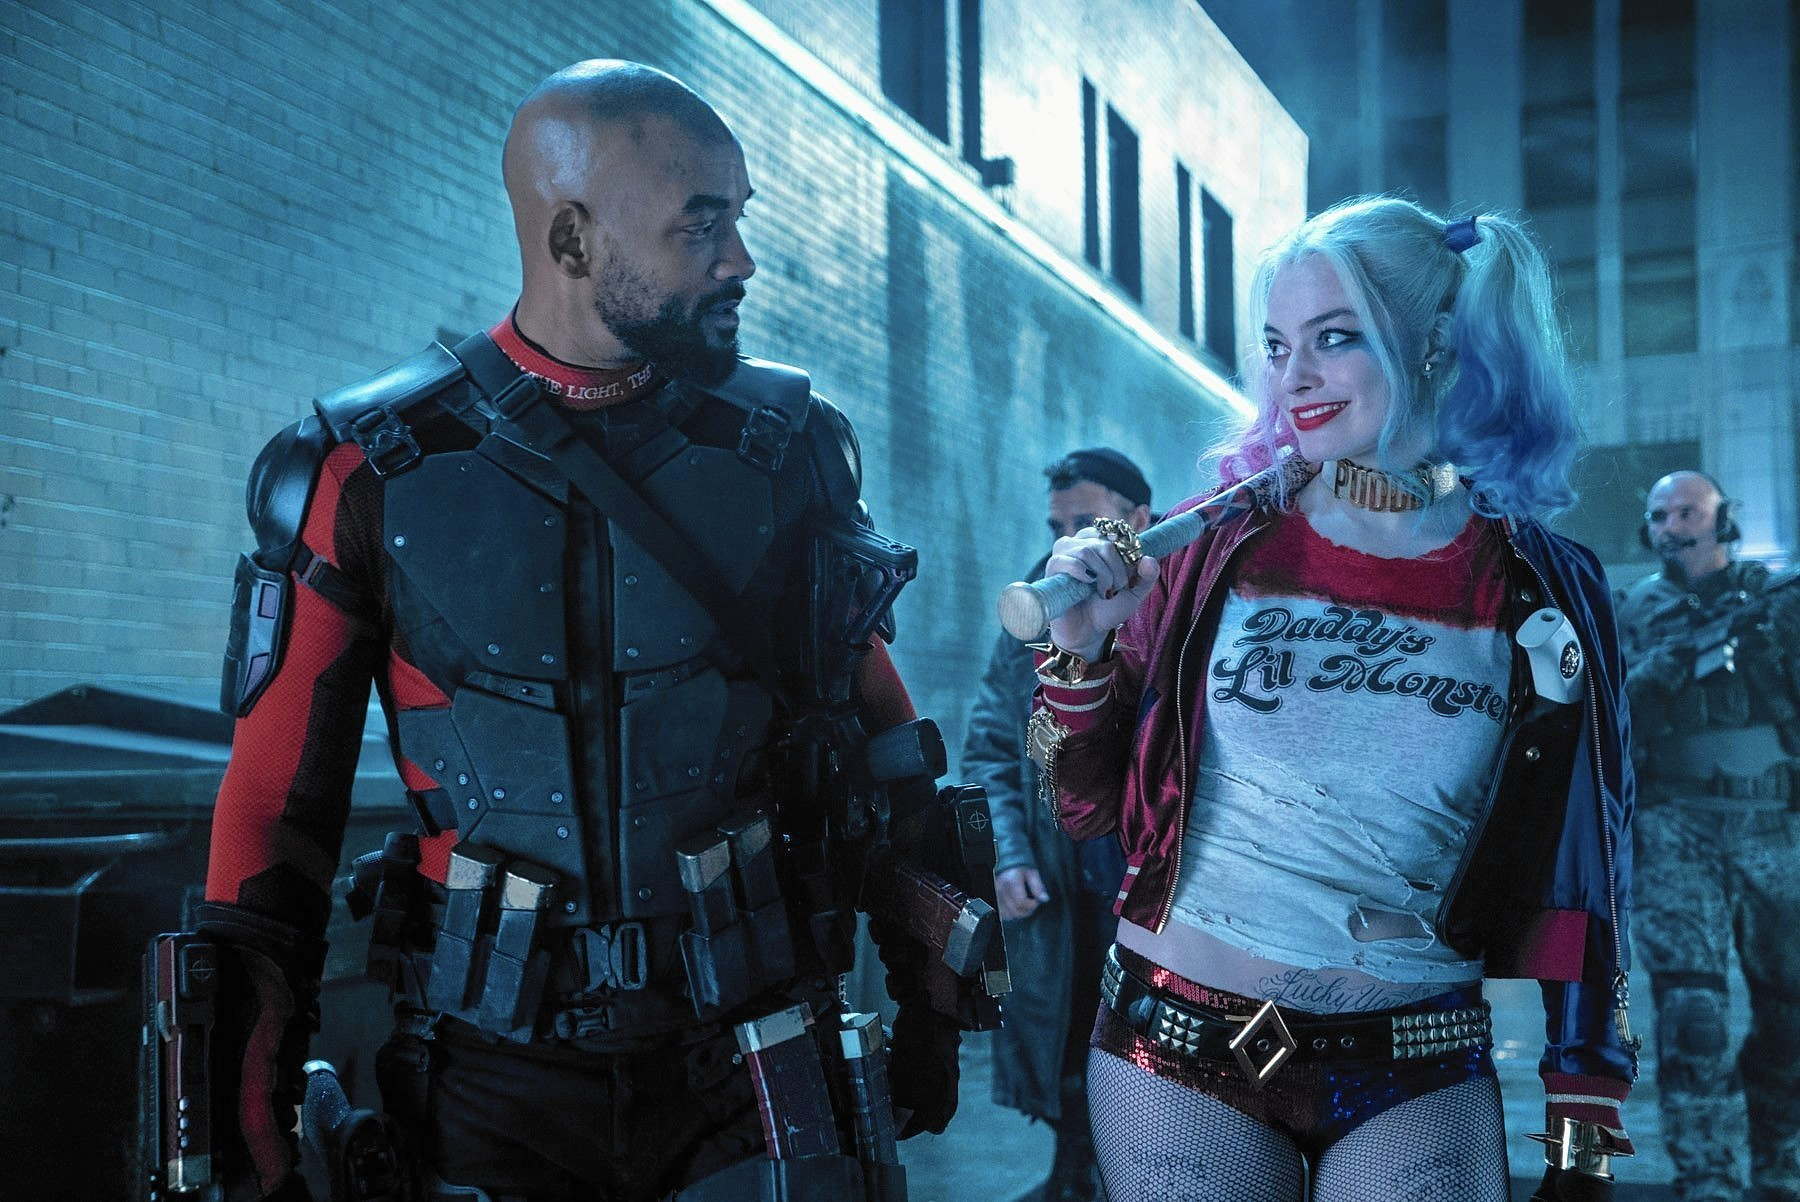 SS - Deadshot and Harley Quinn